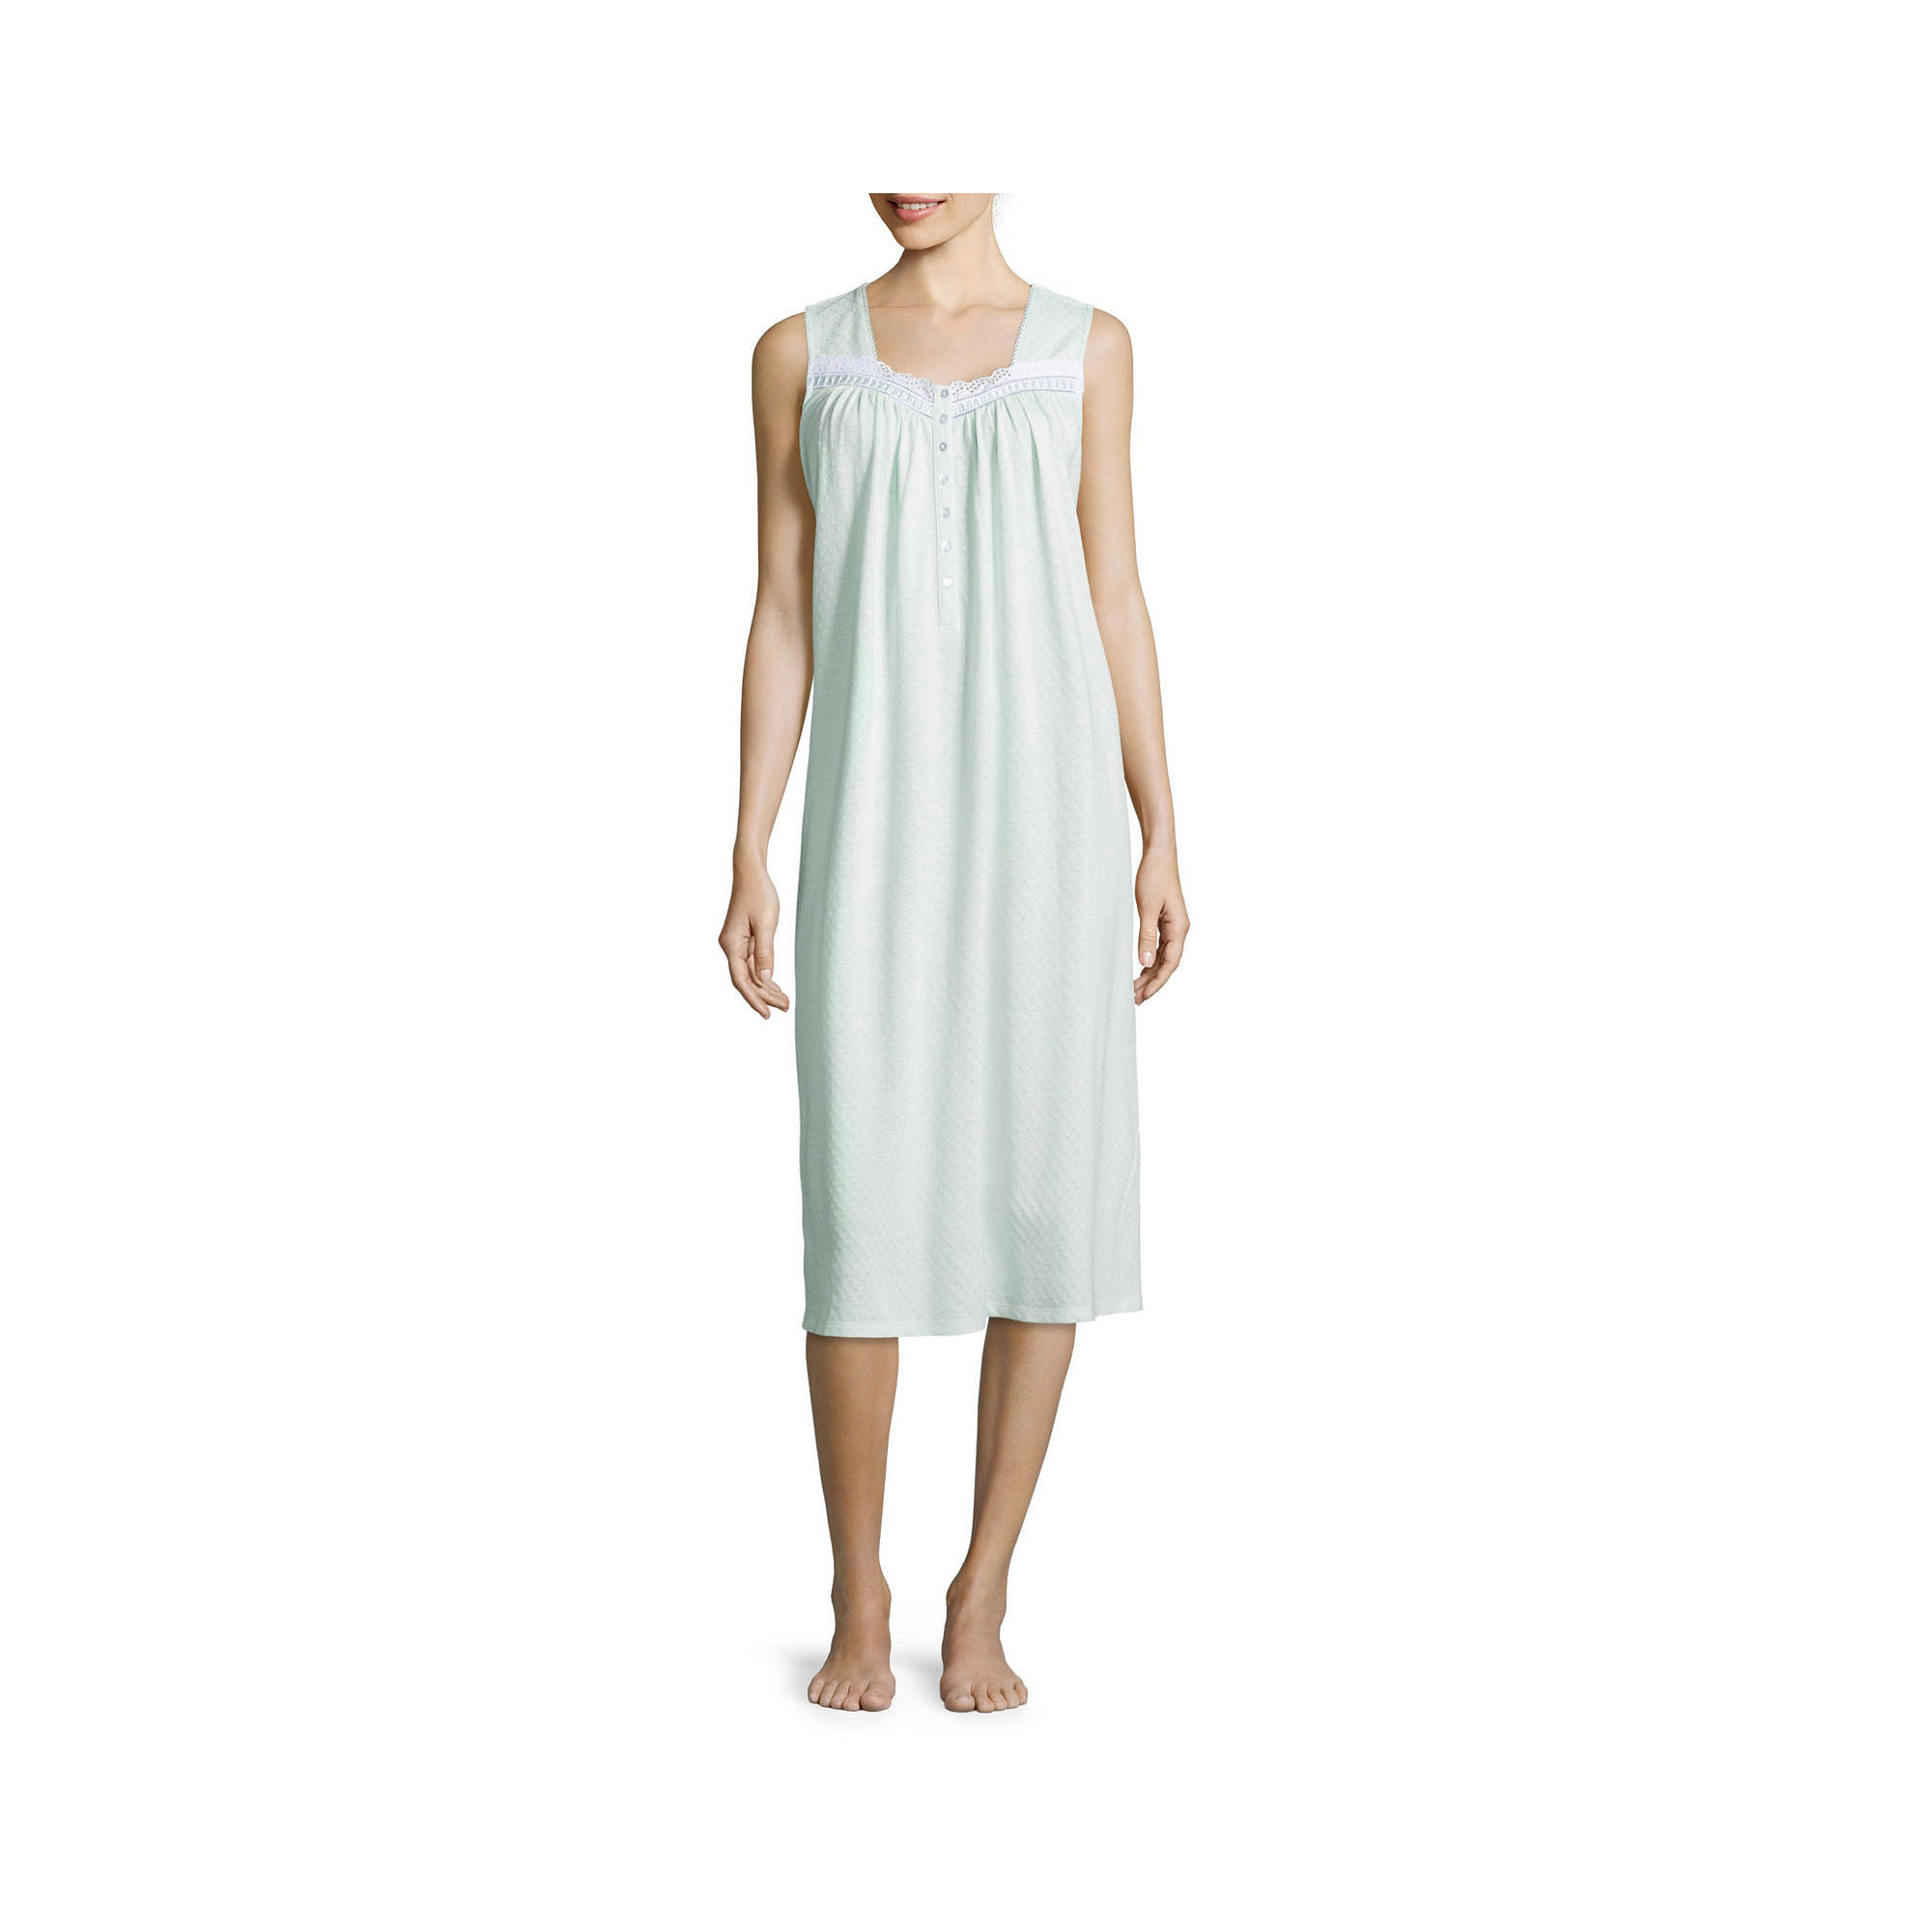 0714192f3c ... UPC 716272614486 product image for Earth Angels Sleeveless Ballet  Nightgown